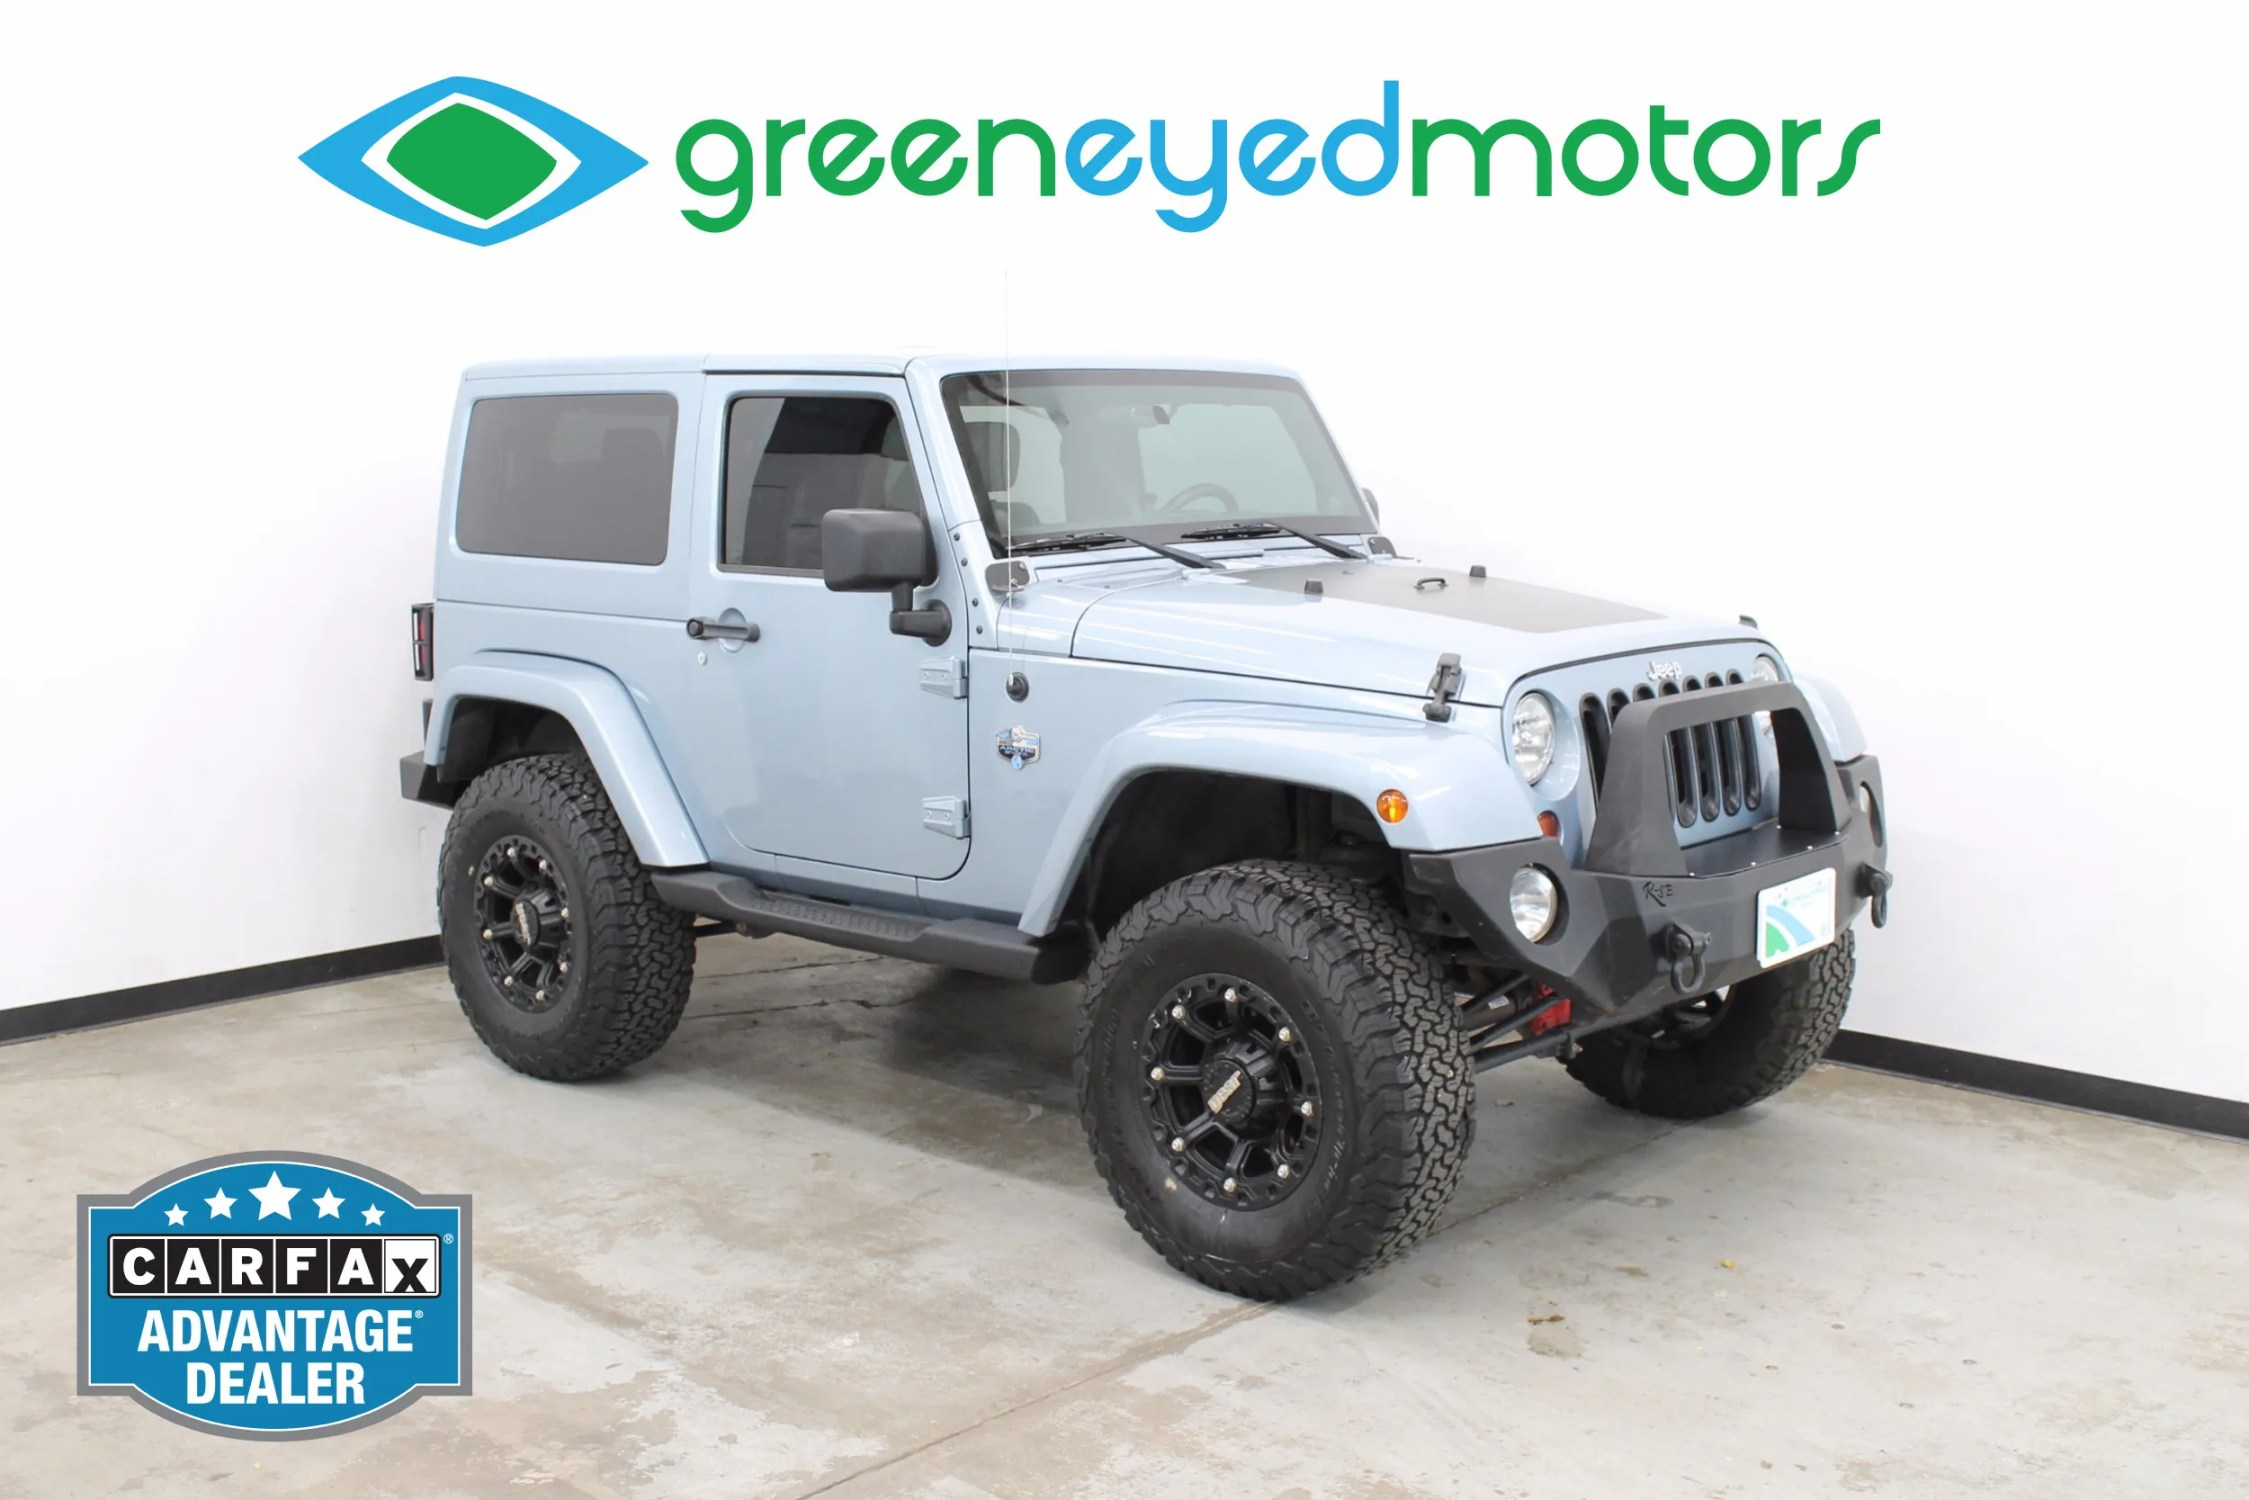 hight resolution of 2012 jeep wrangler arctic manual rock slide engineering bumpers lifted bf goodrich tires